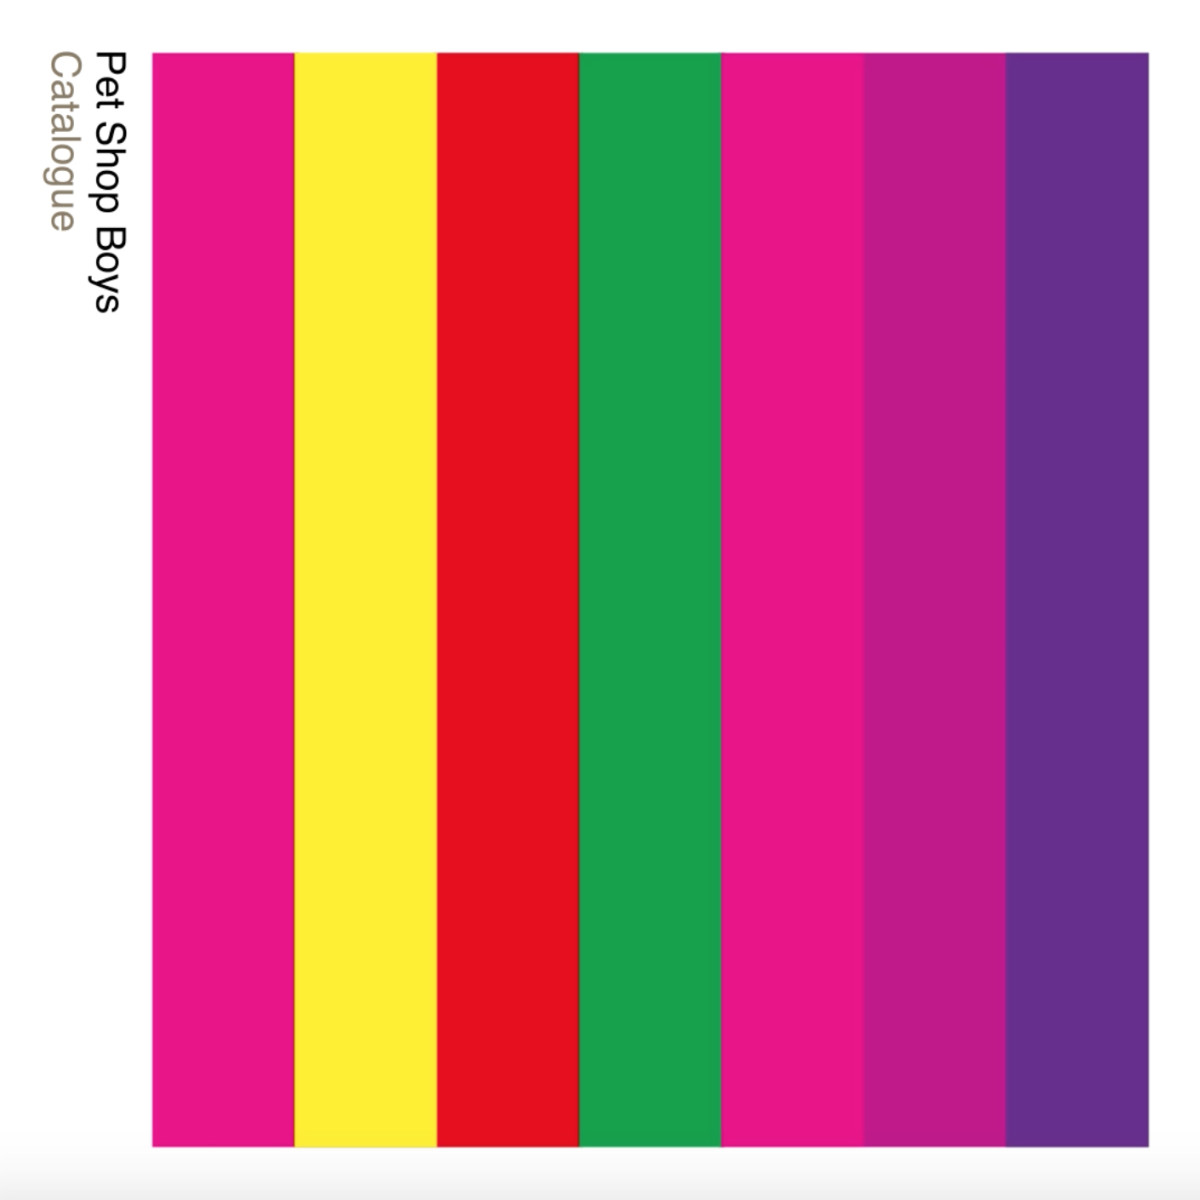 Introspective by Pet Shop Boys album art